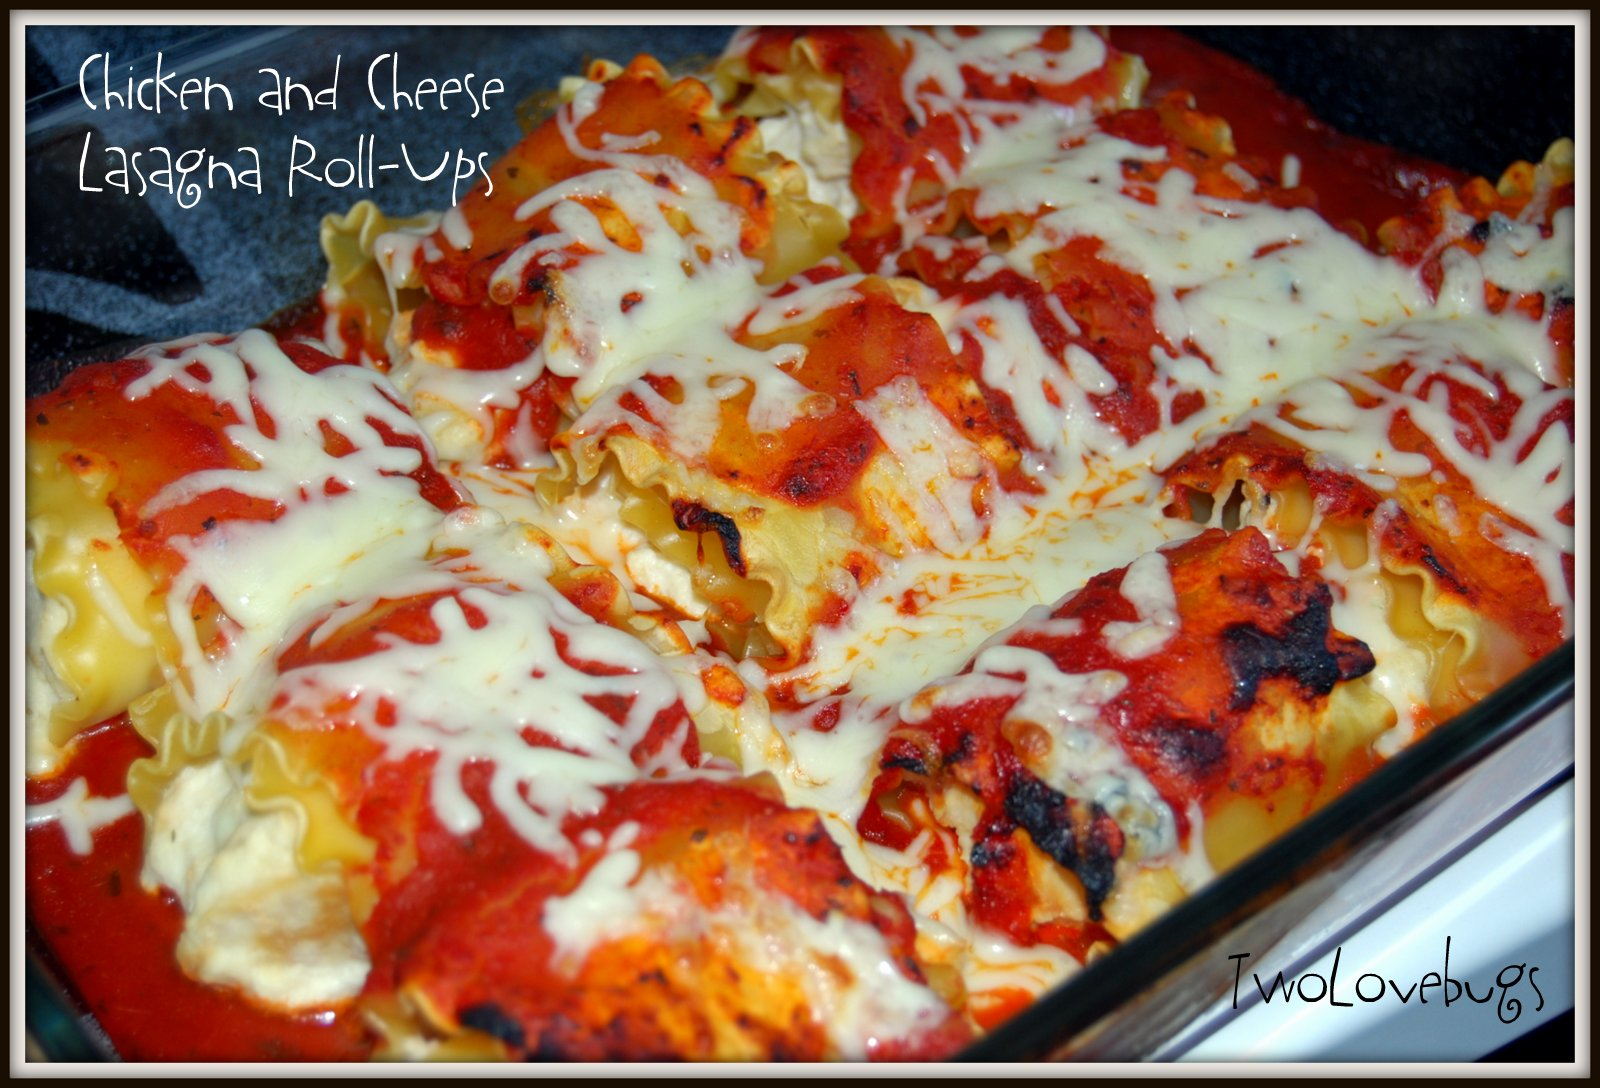 TwoLovebugs: Chicken and Cheese Lasagna Roll-Ups